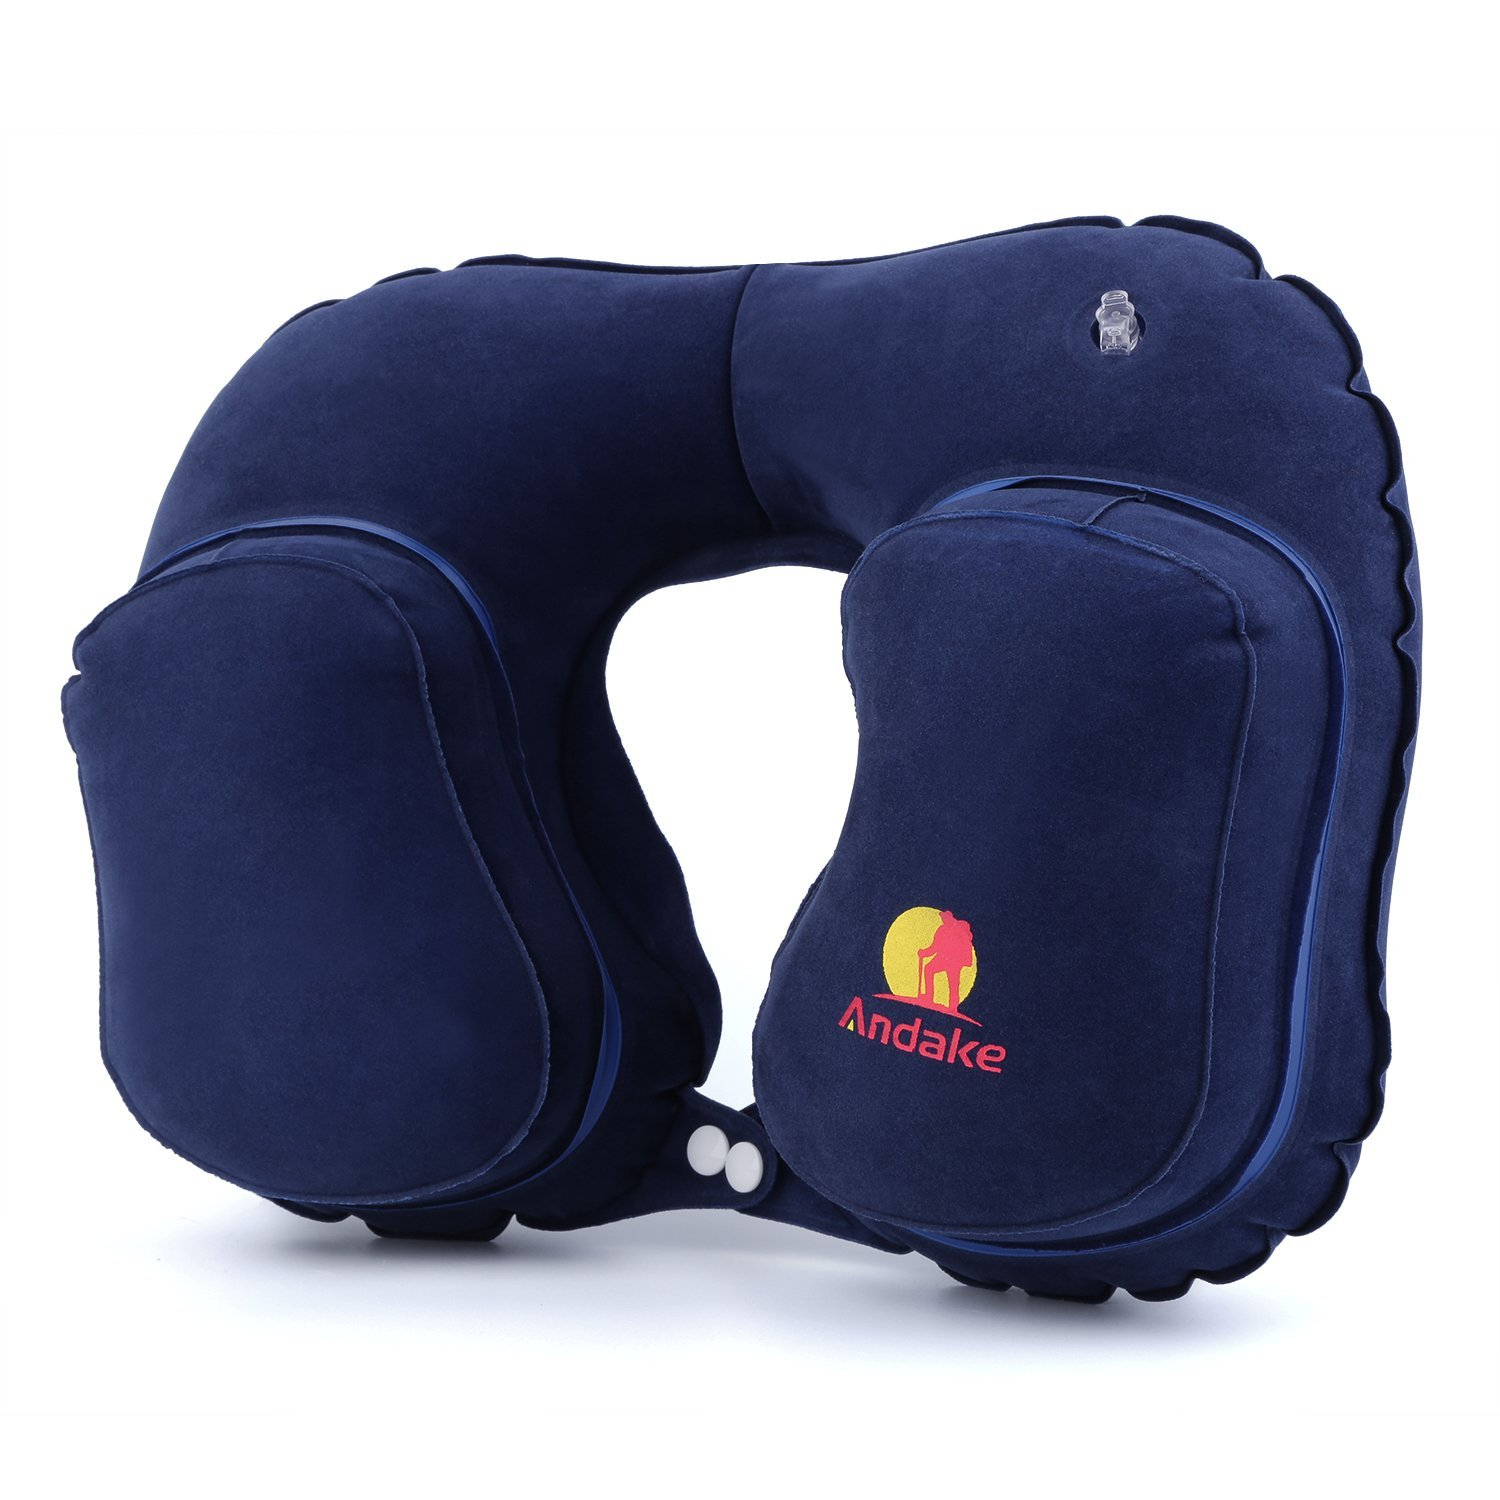 Andake Inflatable Travel Pillow $7.99  Free Shipping from Amazon